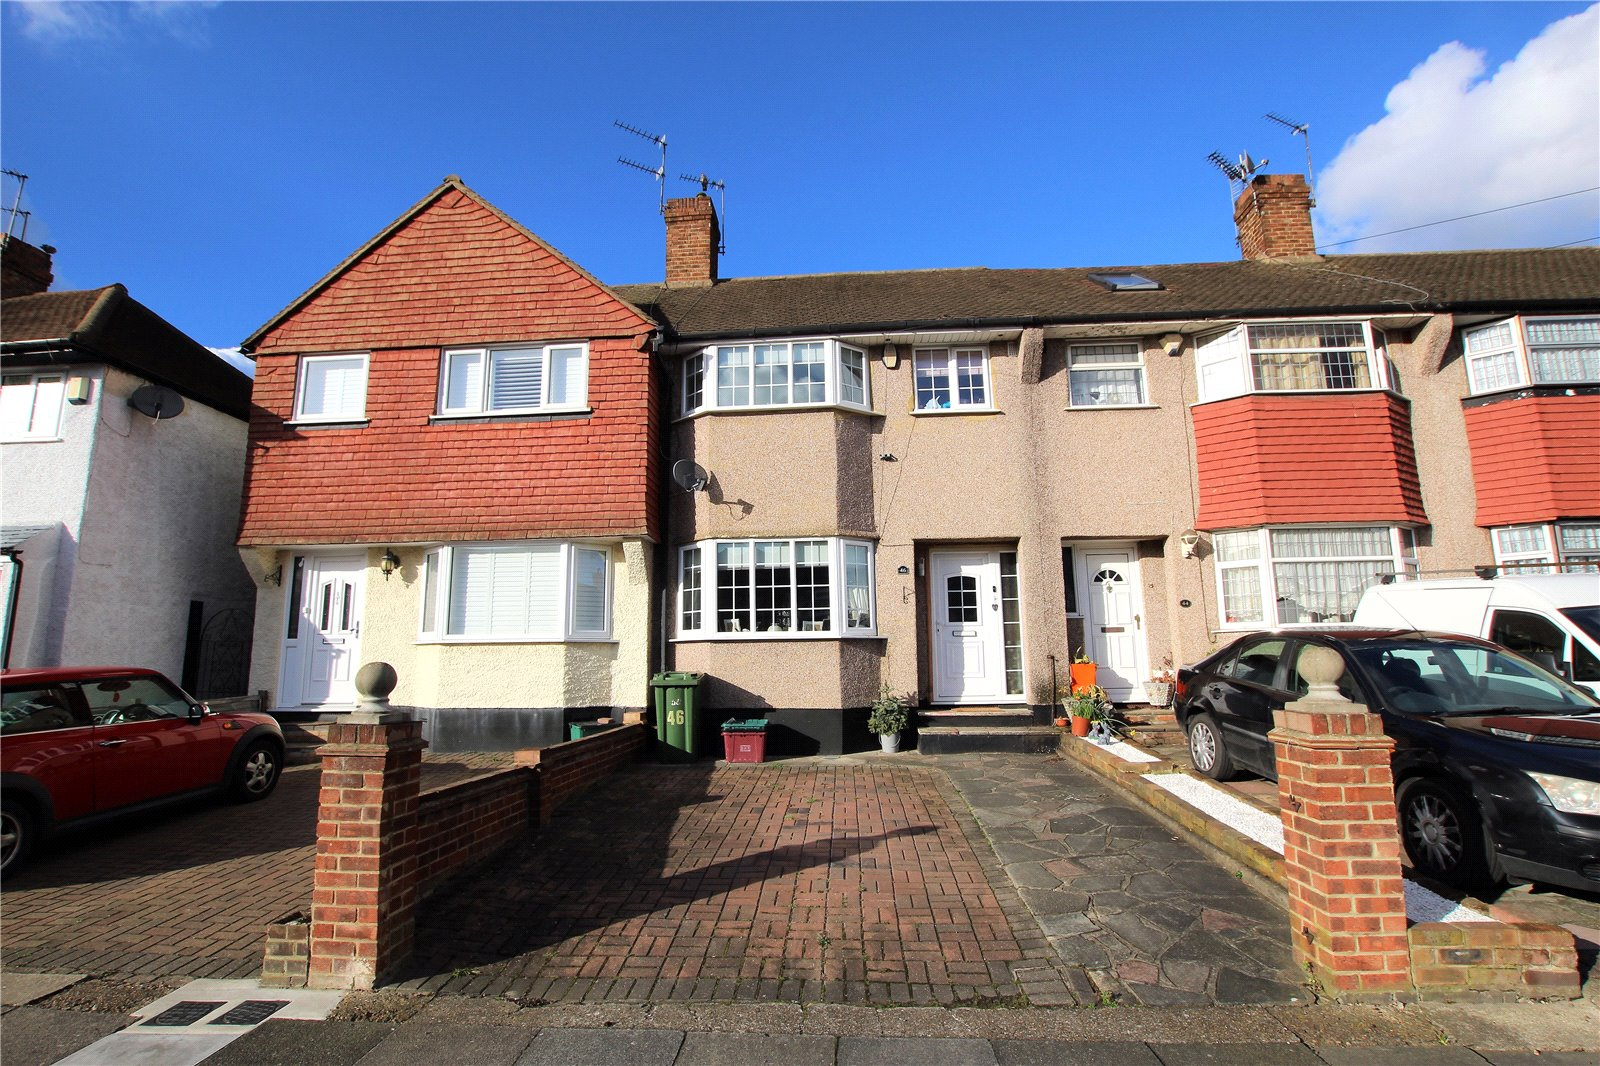 Orchard Rise East, Sidcup, Kent, DA15